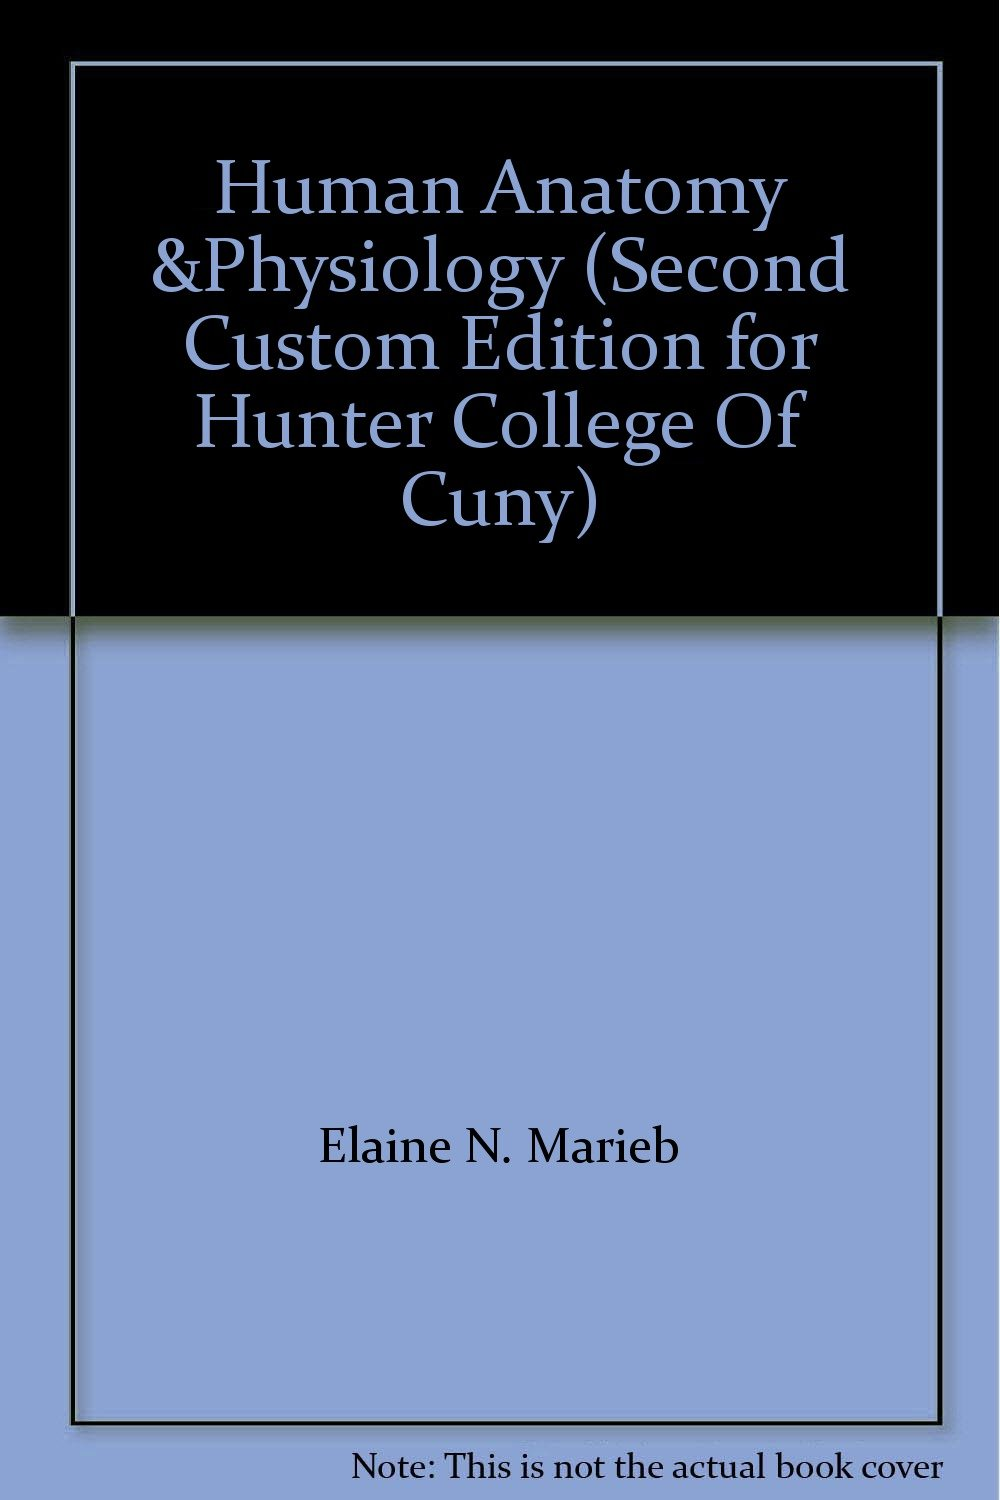 Human Anatomy &Physiology (Second Custom Edition for Hunter College ...